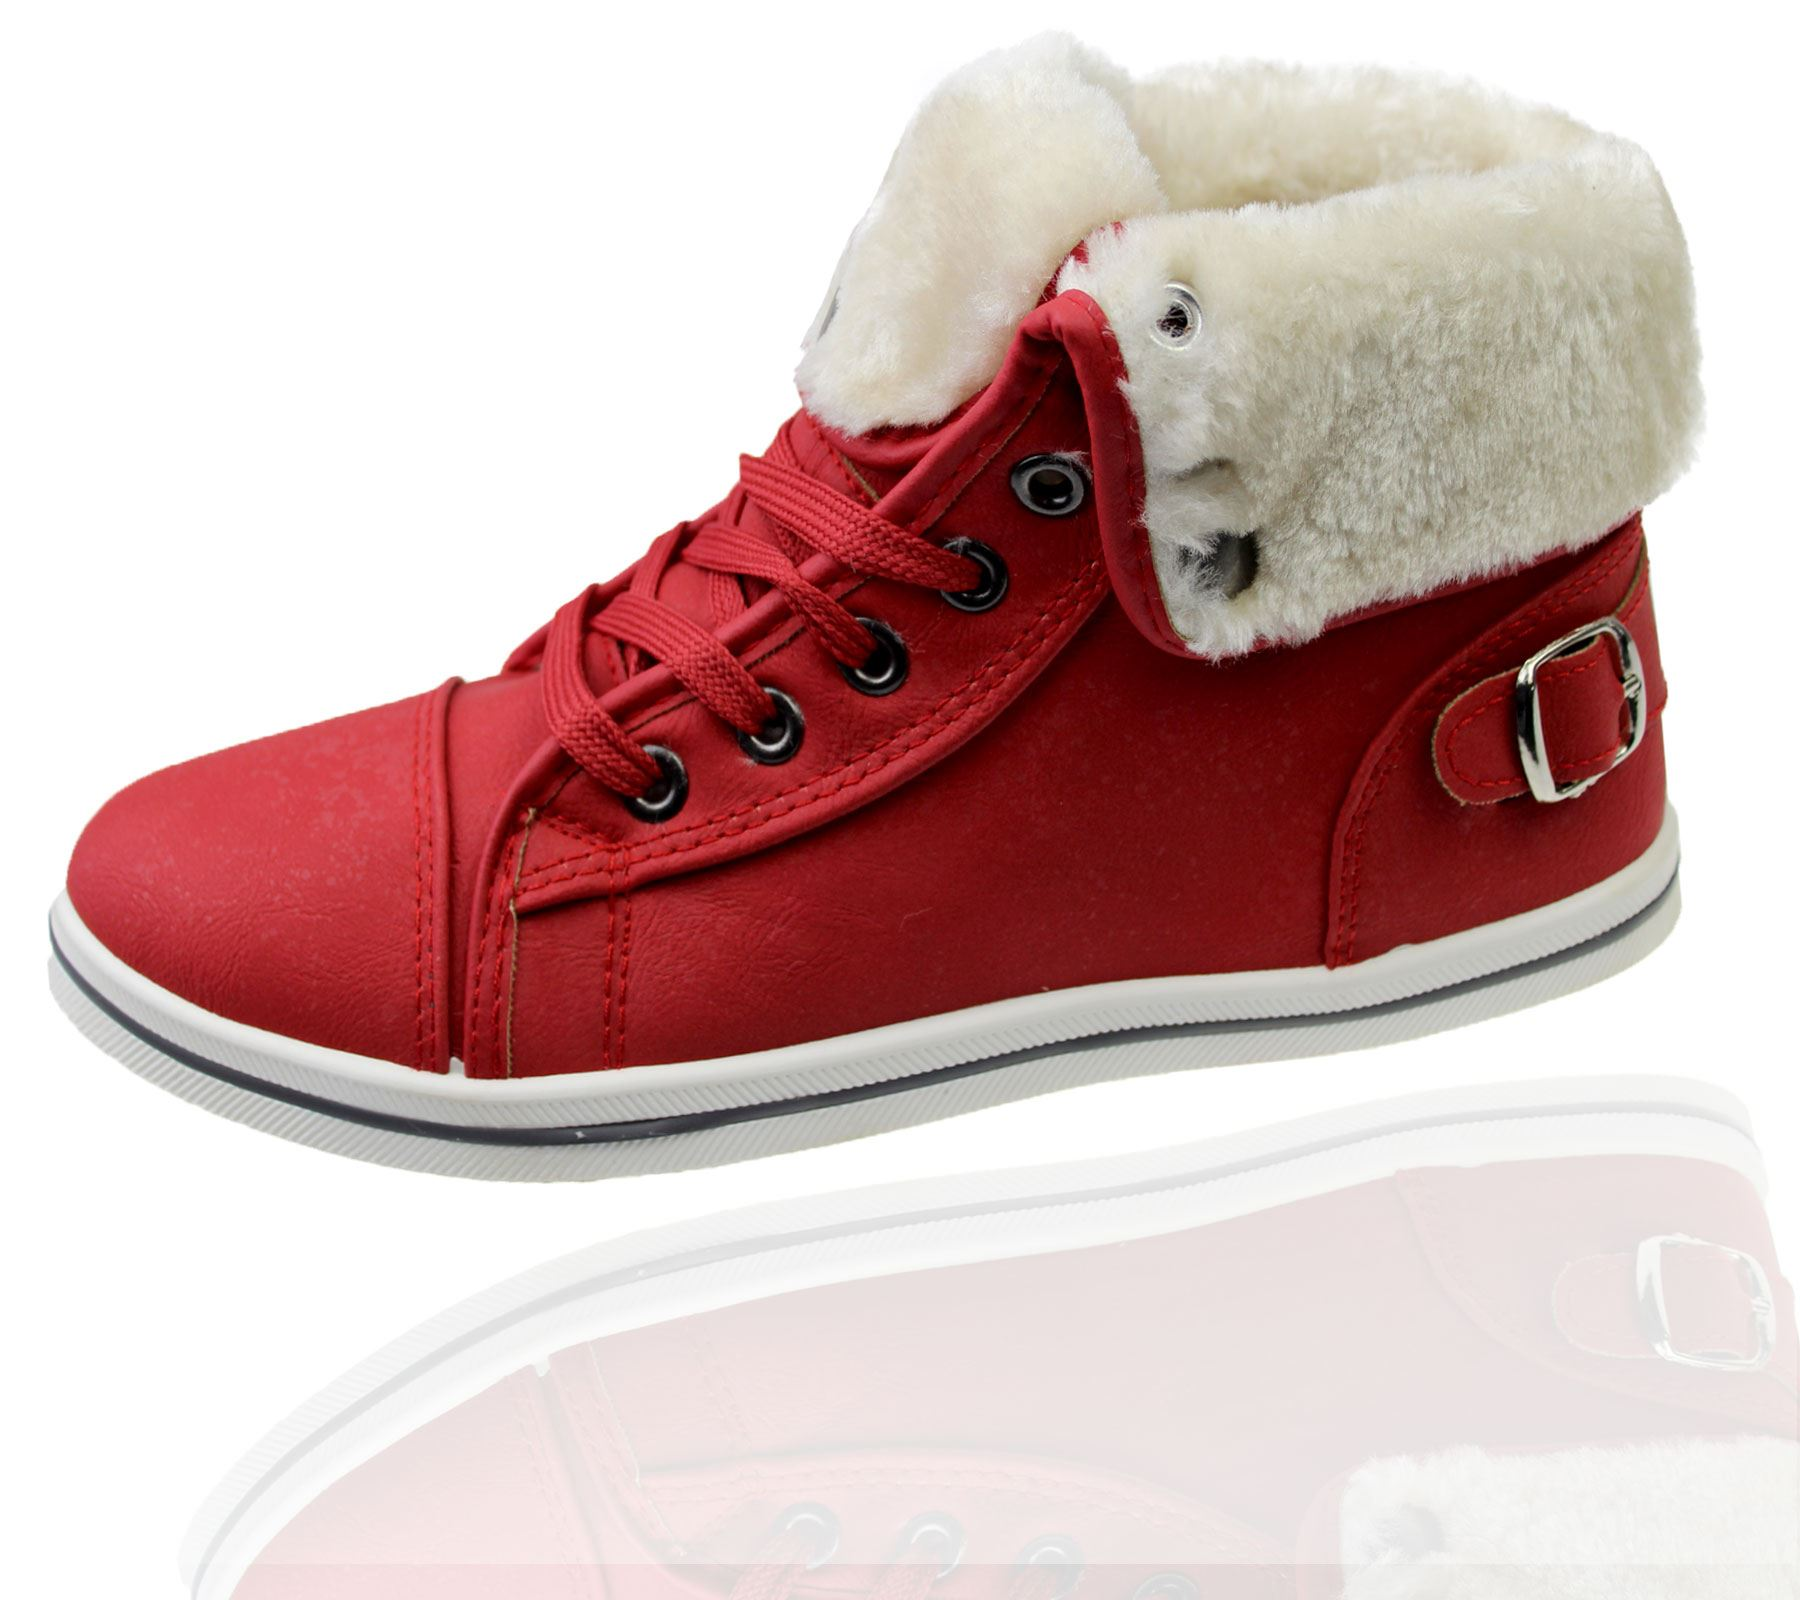 Girls-Boots-Womens-Warm-Lined-High-Top-Ankle-Trainer-Ladies-Winter-Shoes-Size miniatura 46